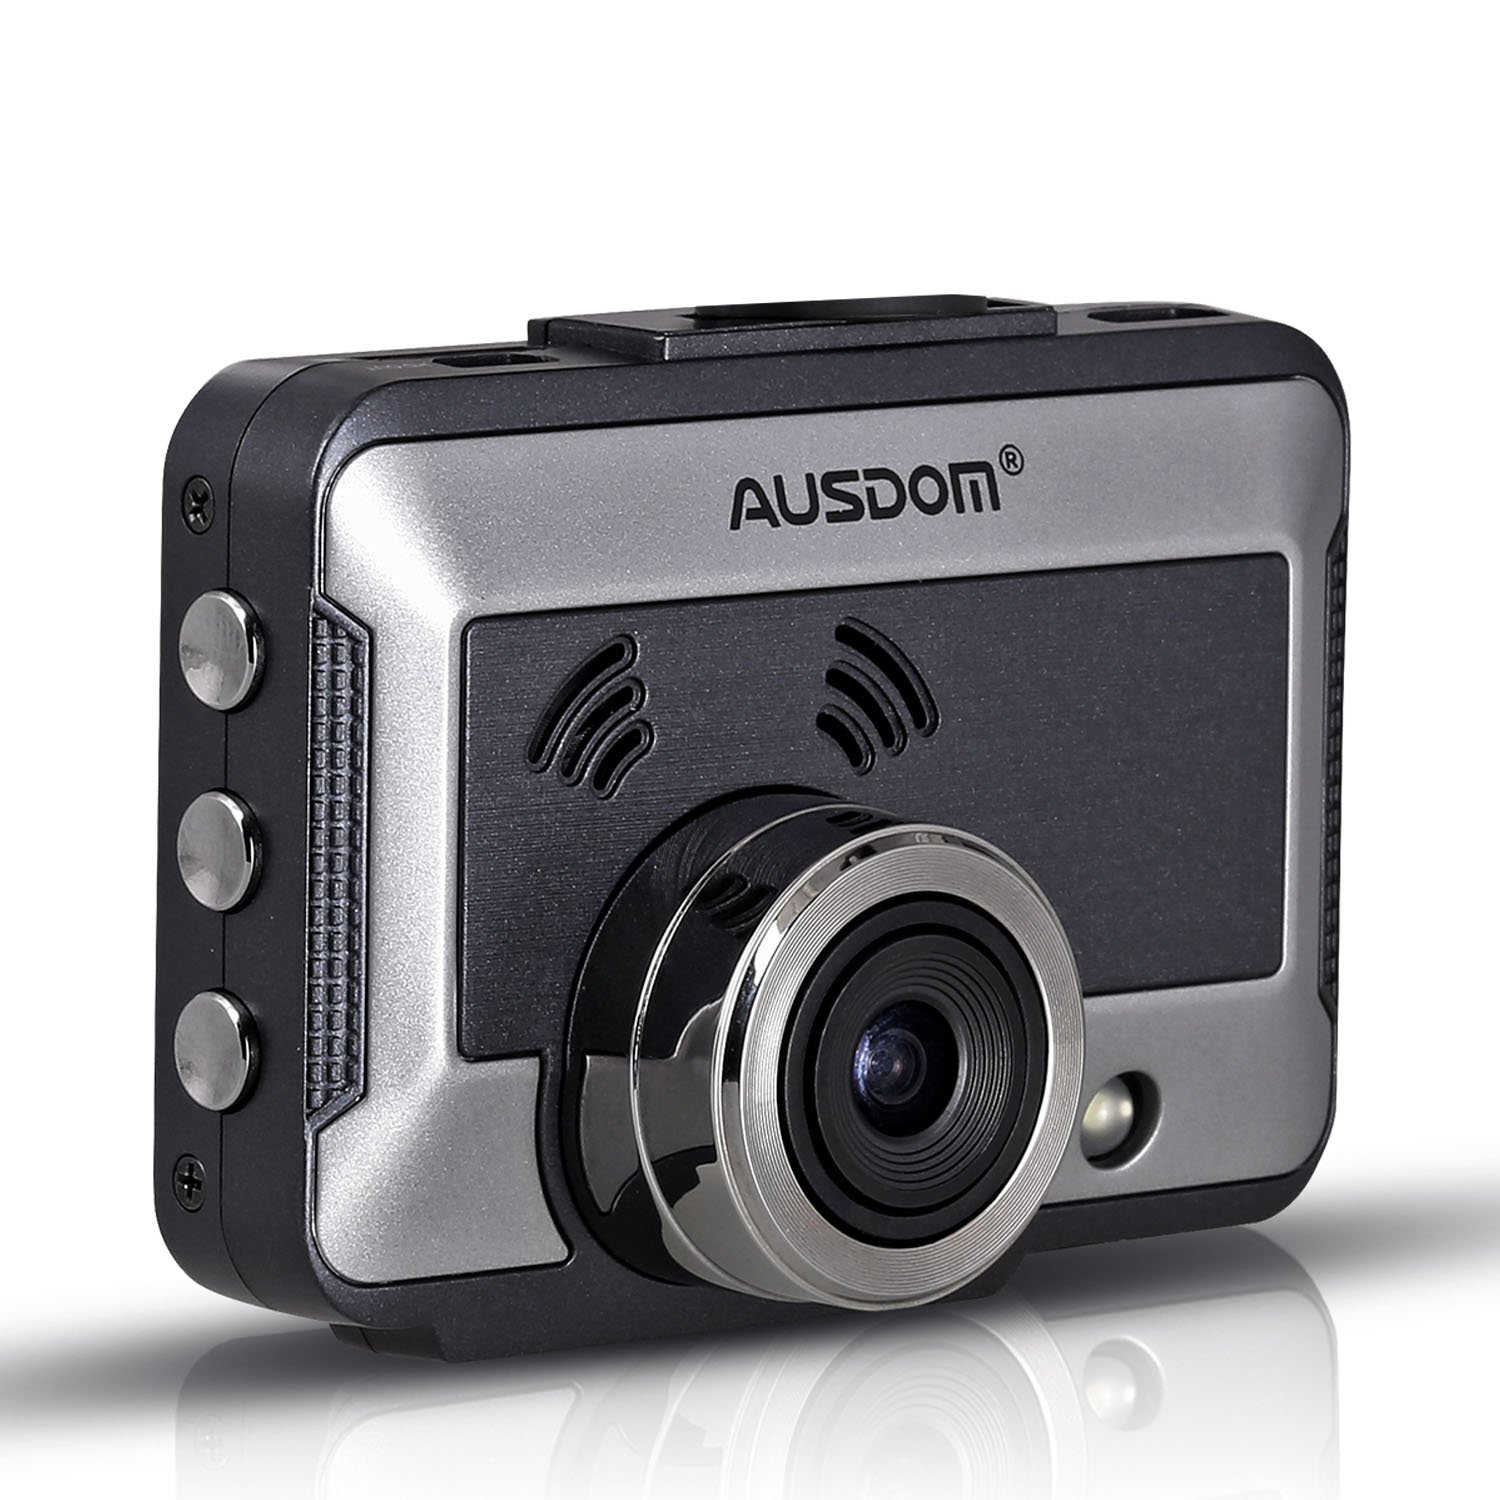 AUSDOM Dash Cam AD250 2.0 Inches Car DVR with 120° Wide Angle Lens,1080p Full HD and WDR - The Best Dash Camera for Cars